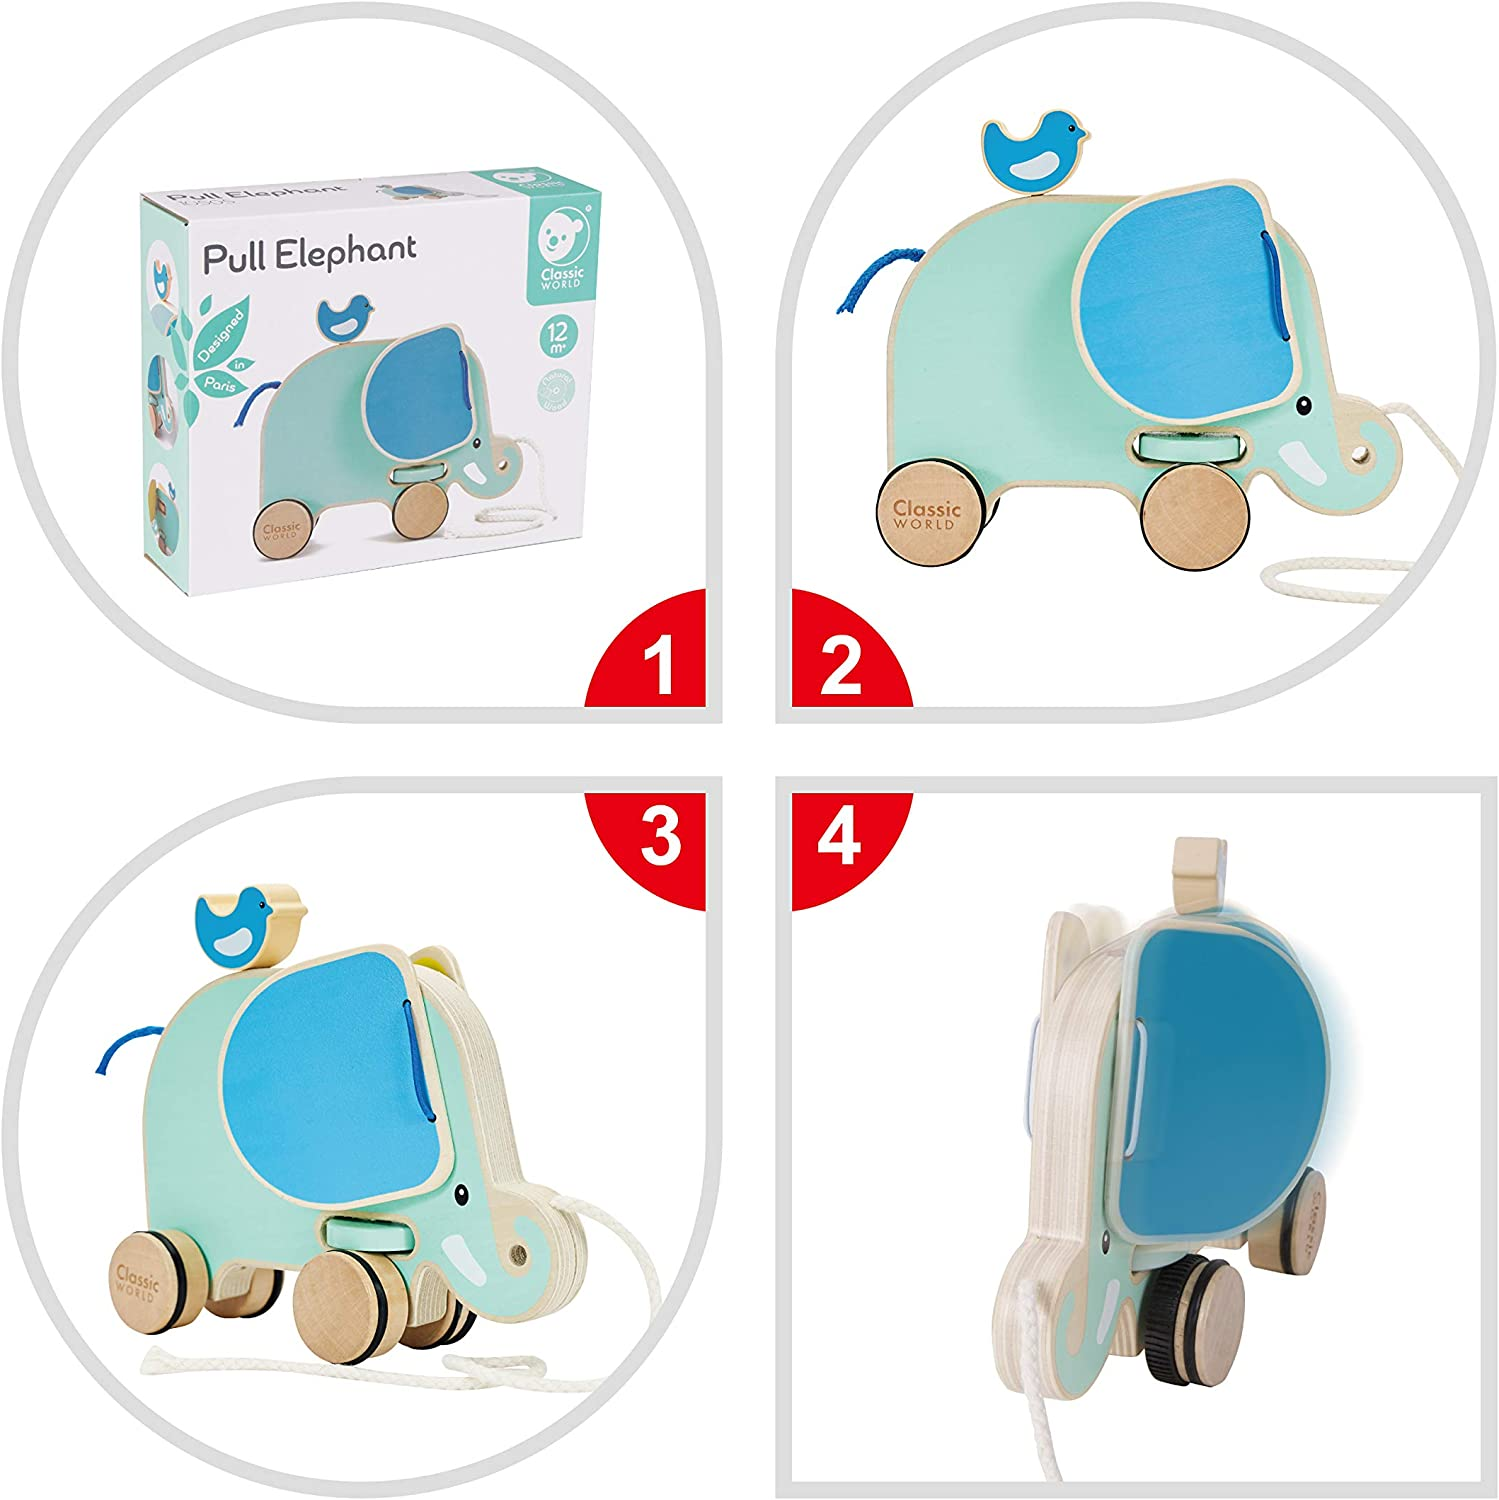 Classic World Pull Along Walking Toys,Wooden Pull Elephant Toy for Baby Toddler